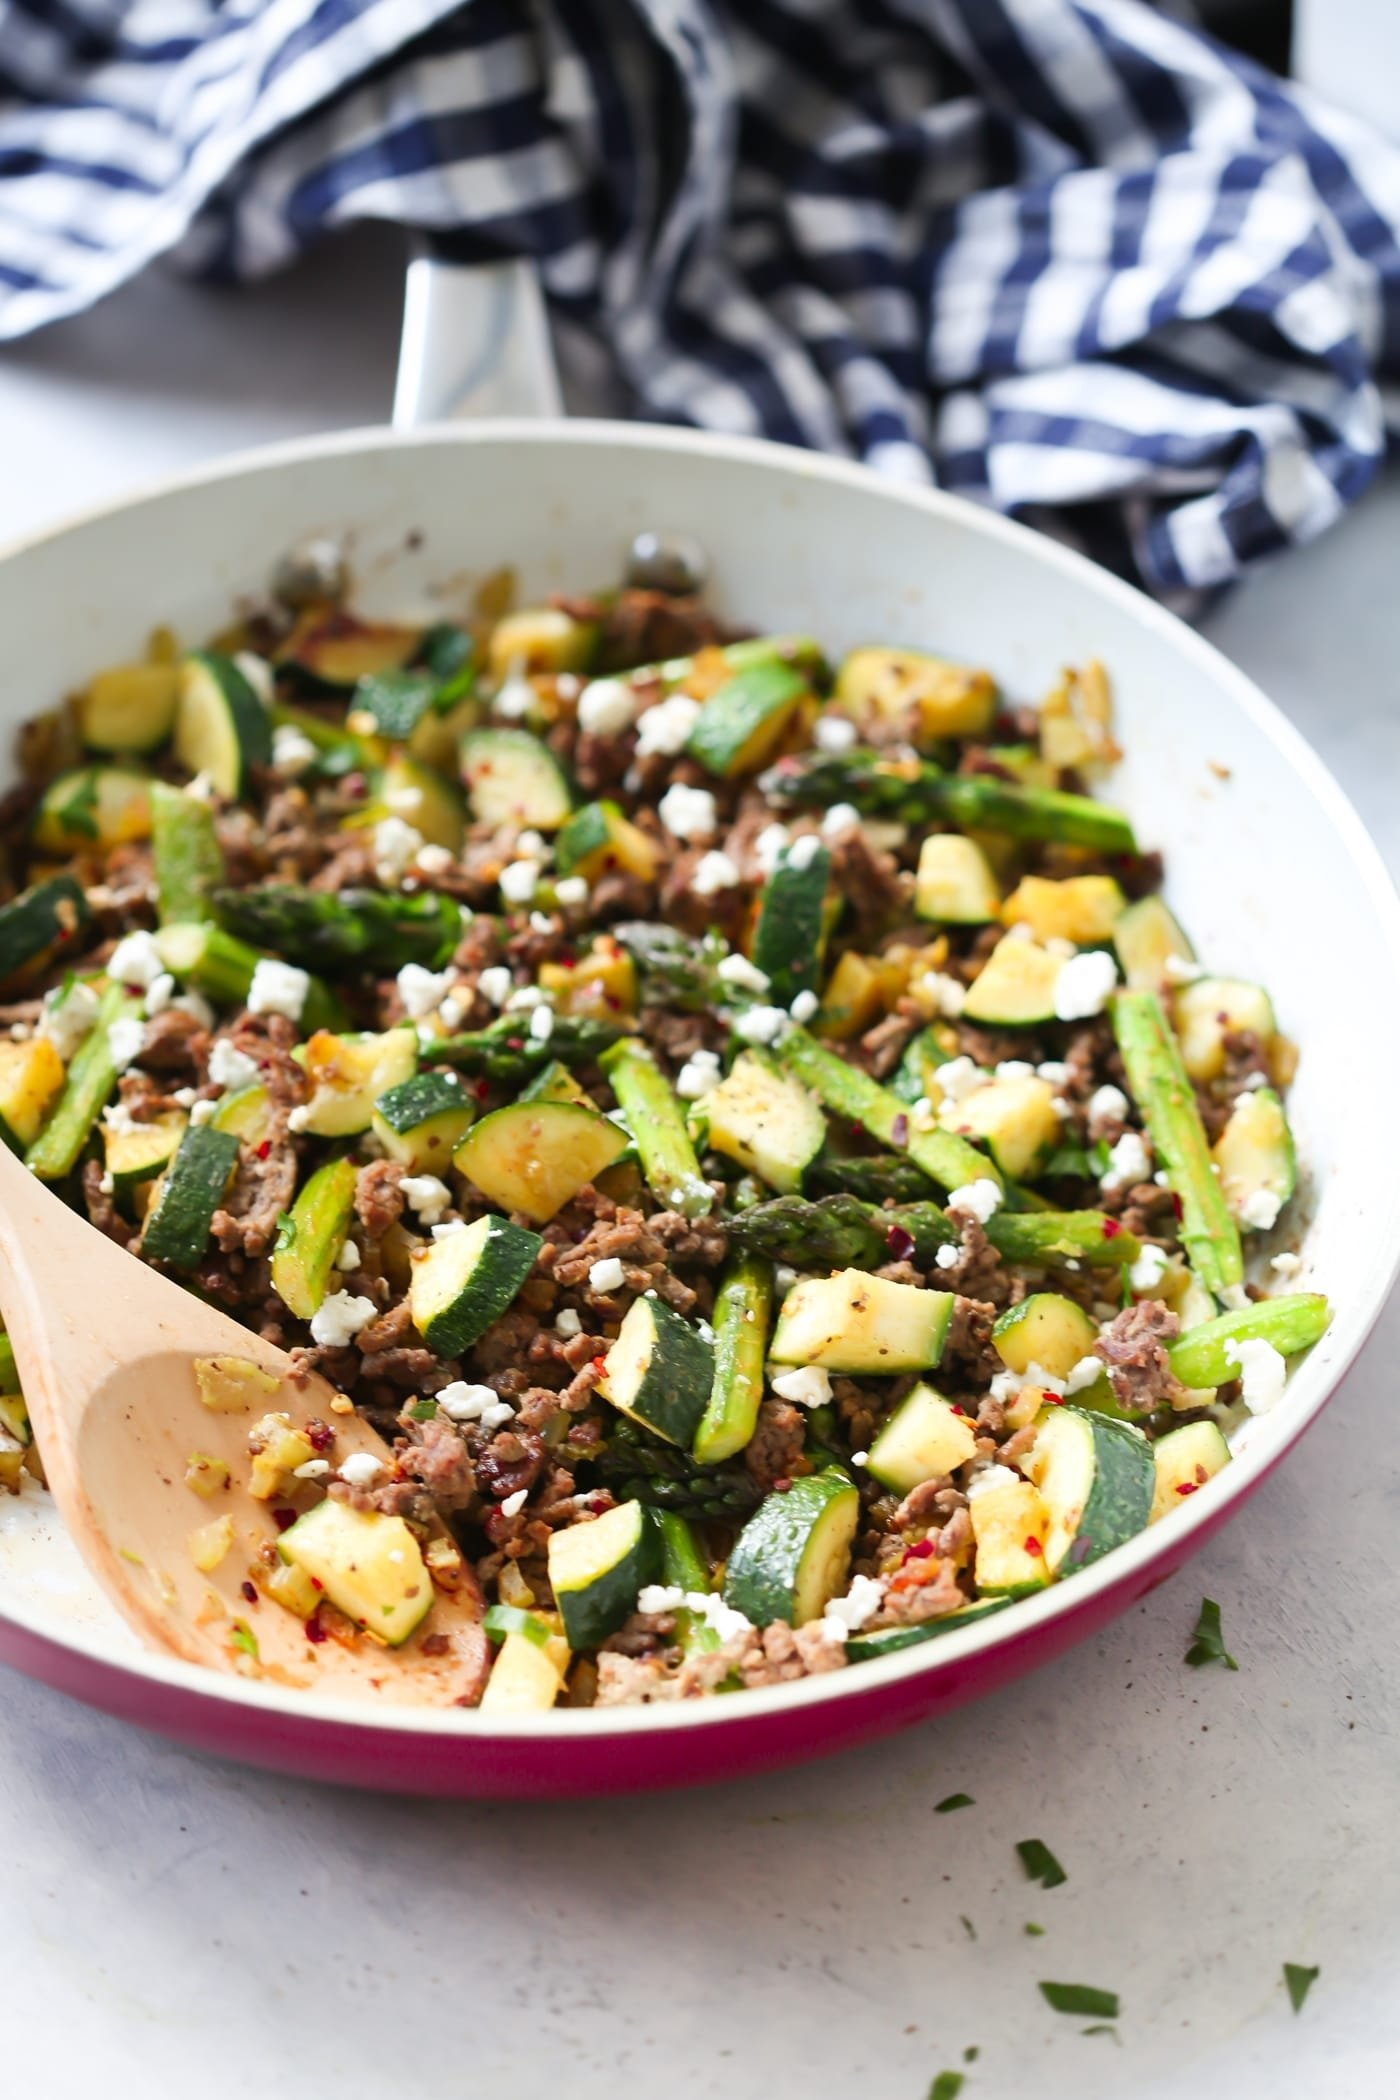 10 Most Recommended Meal Ideas For Ground Beef ground beef veggie skillet recipe primavera kitchen 3 2020